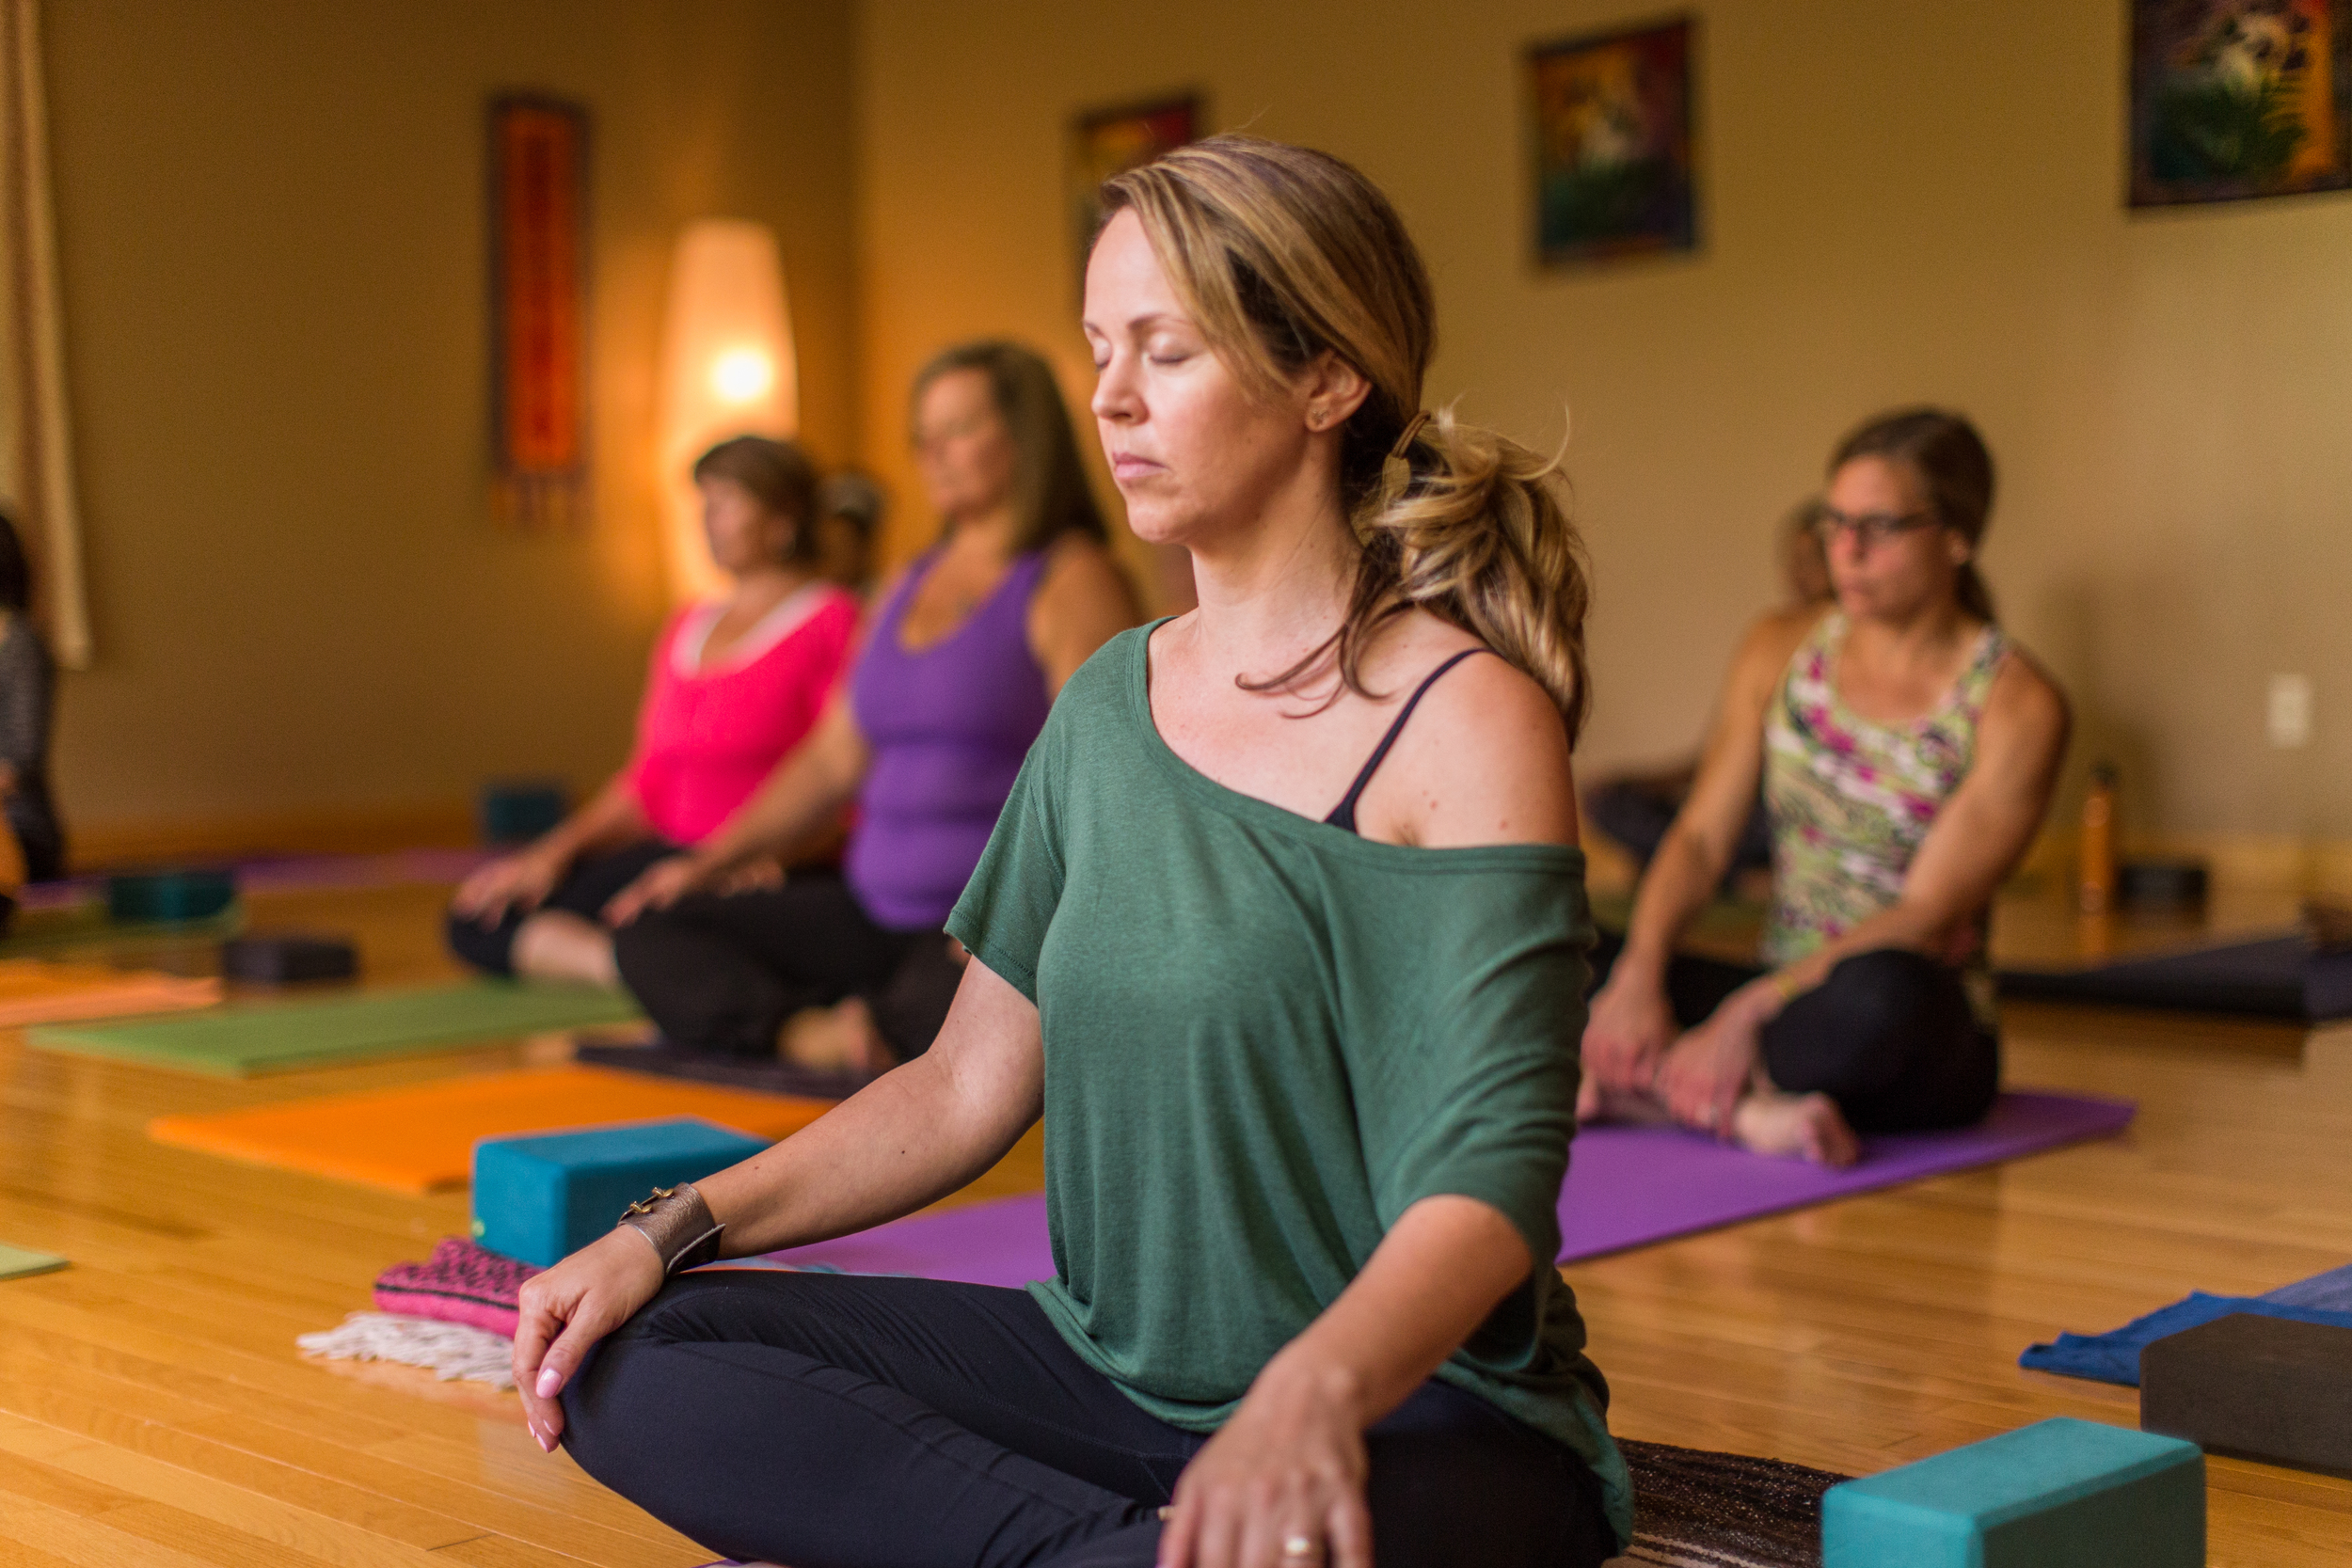 mindfullness-meditation-yoga-training-minnesota